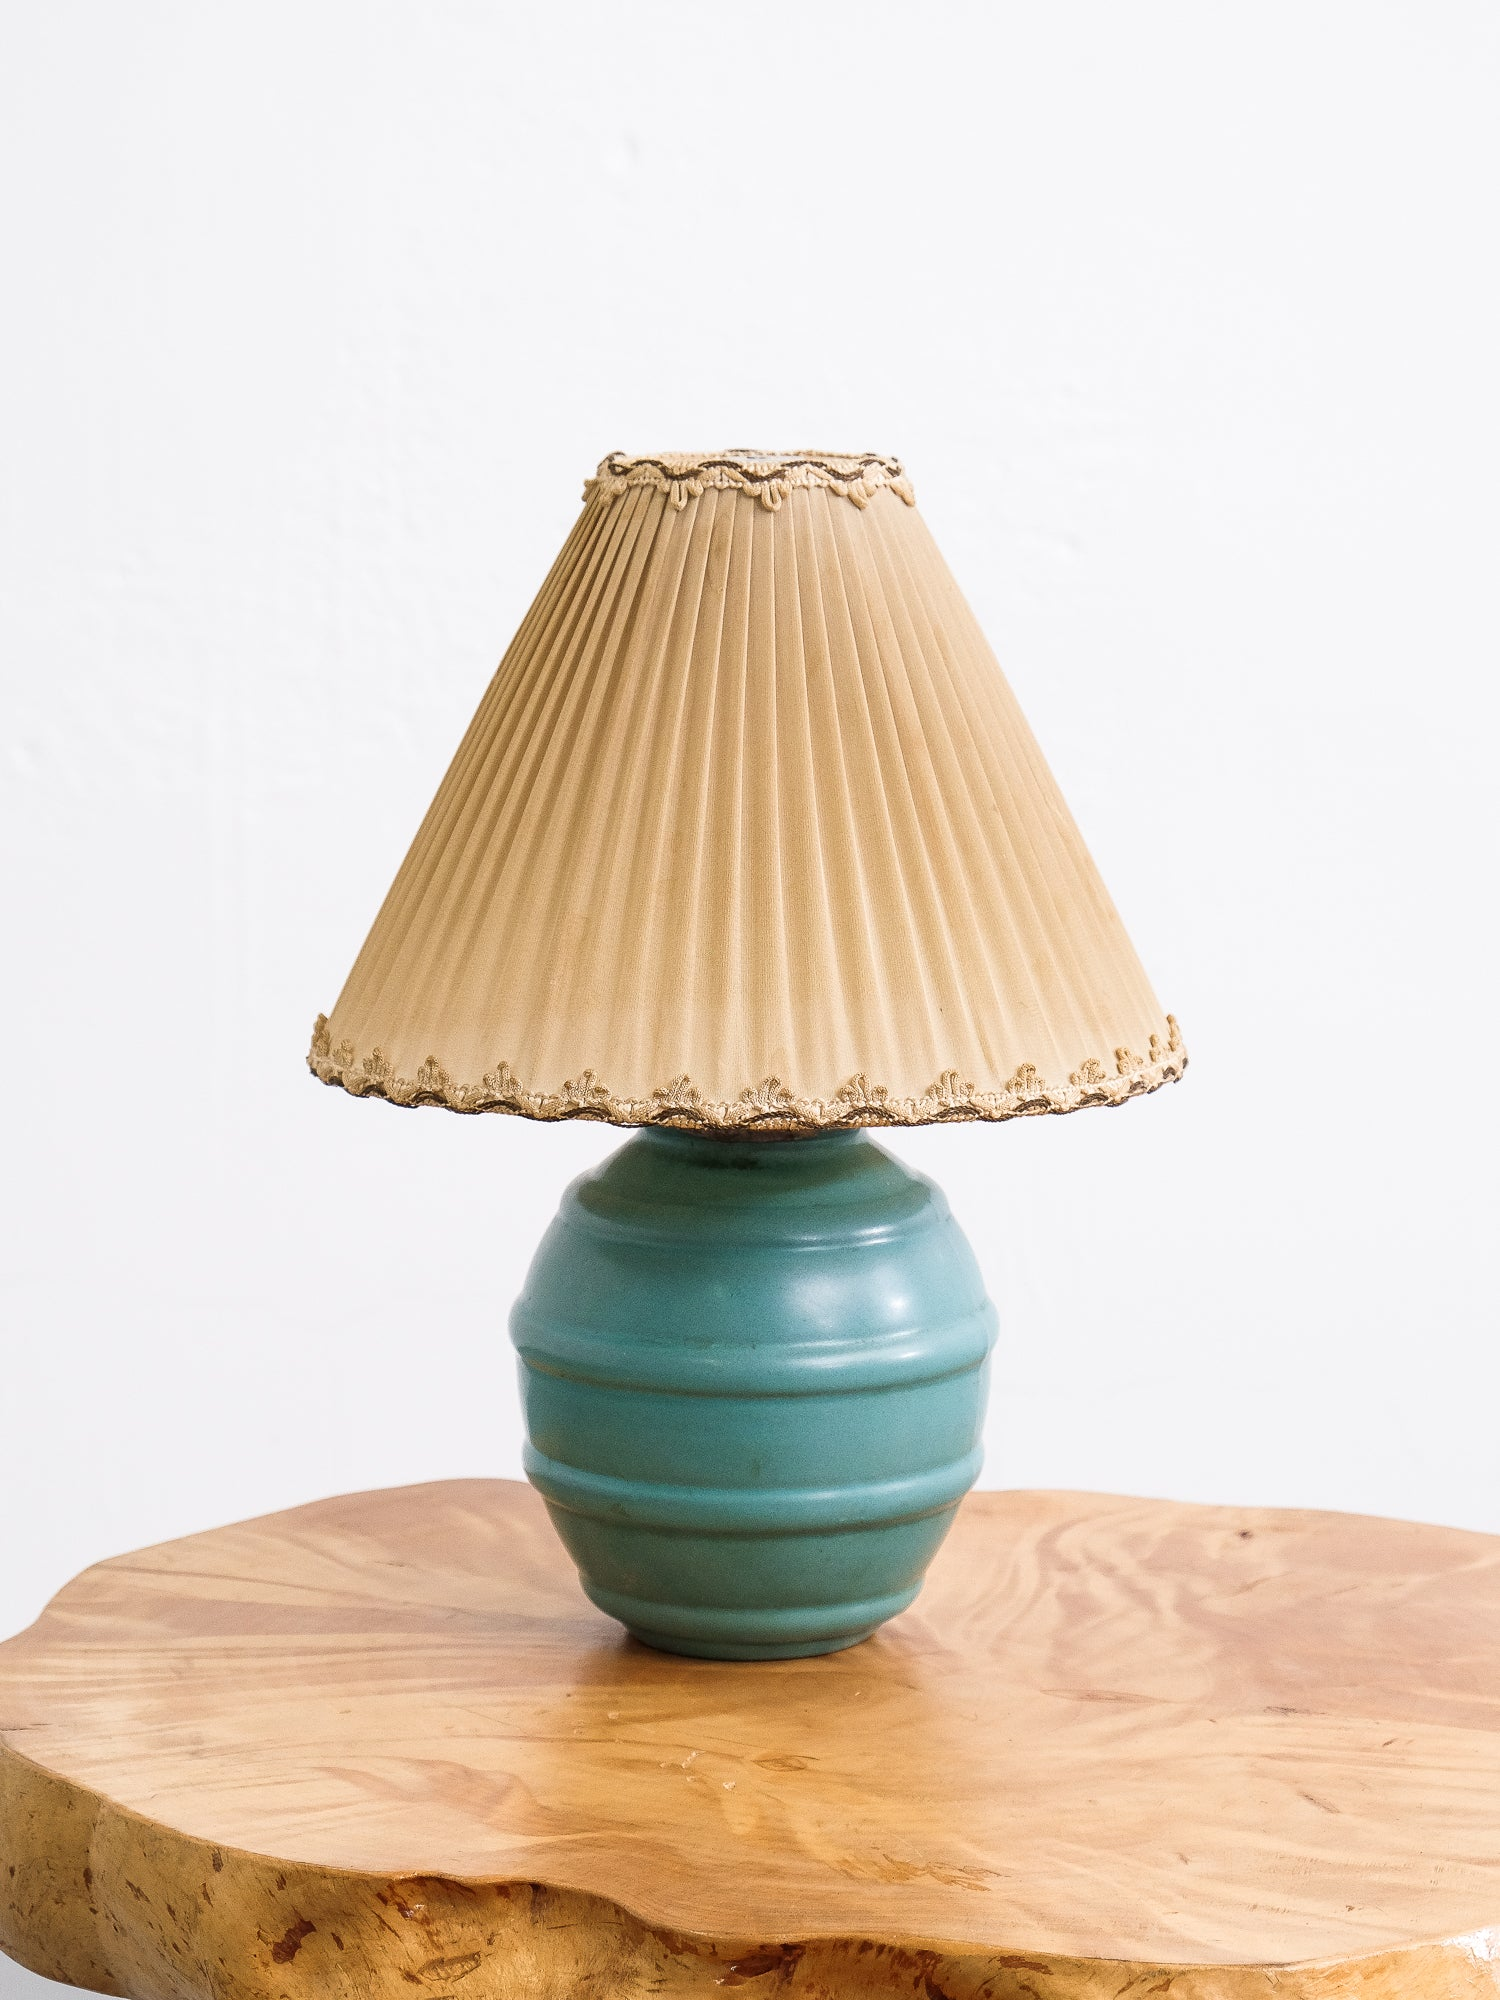 Ceramic Table Lamp, Arabia, Finland, 1960s